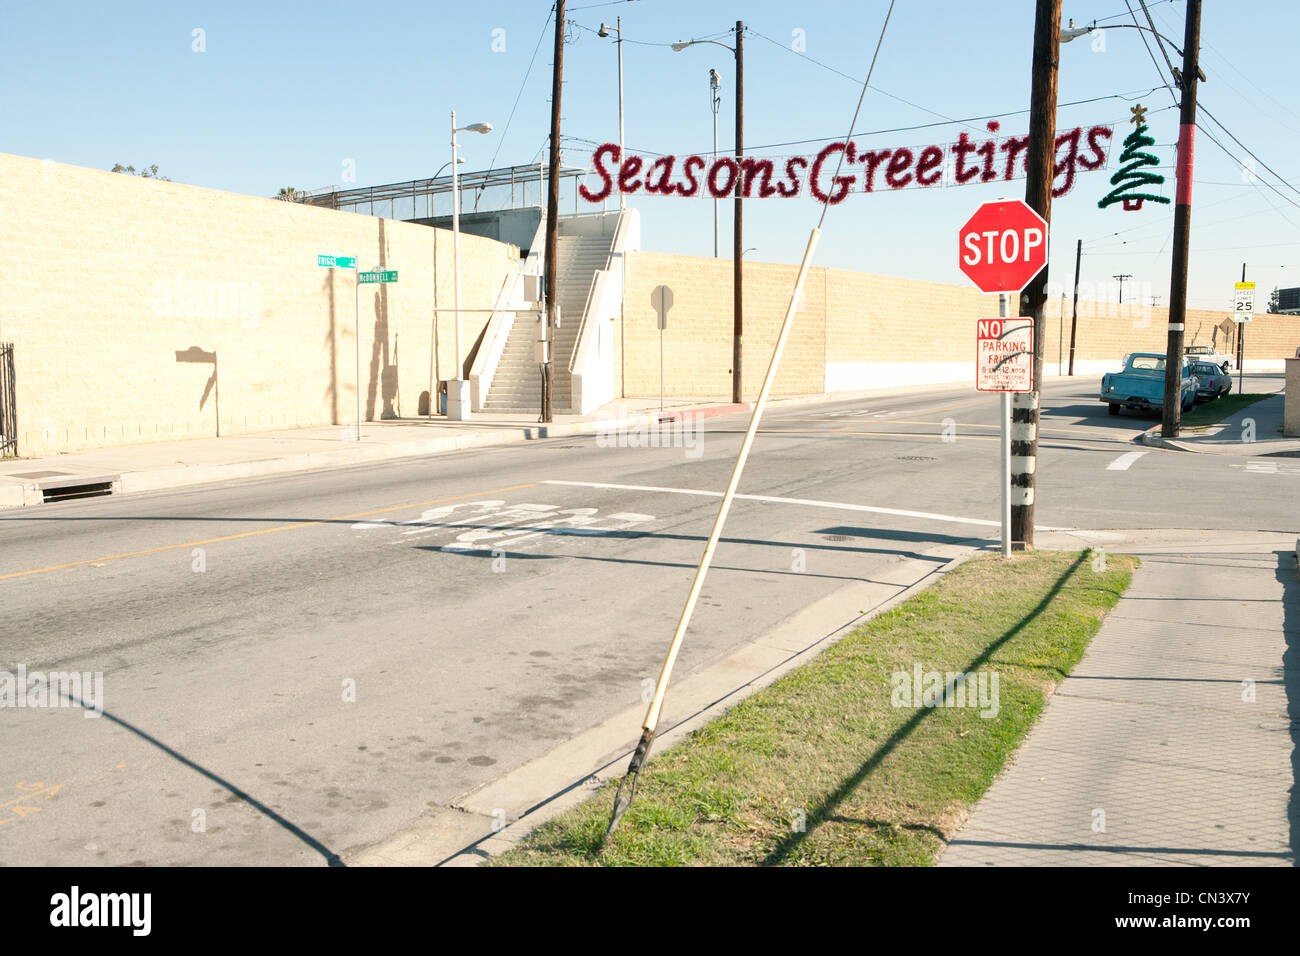 Seasons Greetings Banner im düsteren Viertel Stockbild